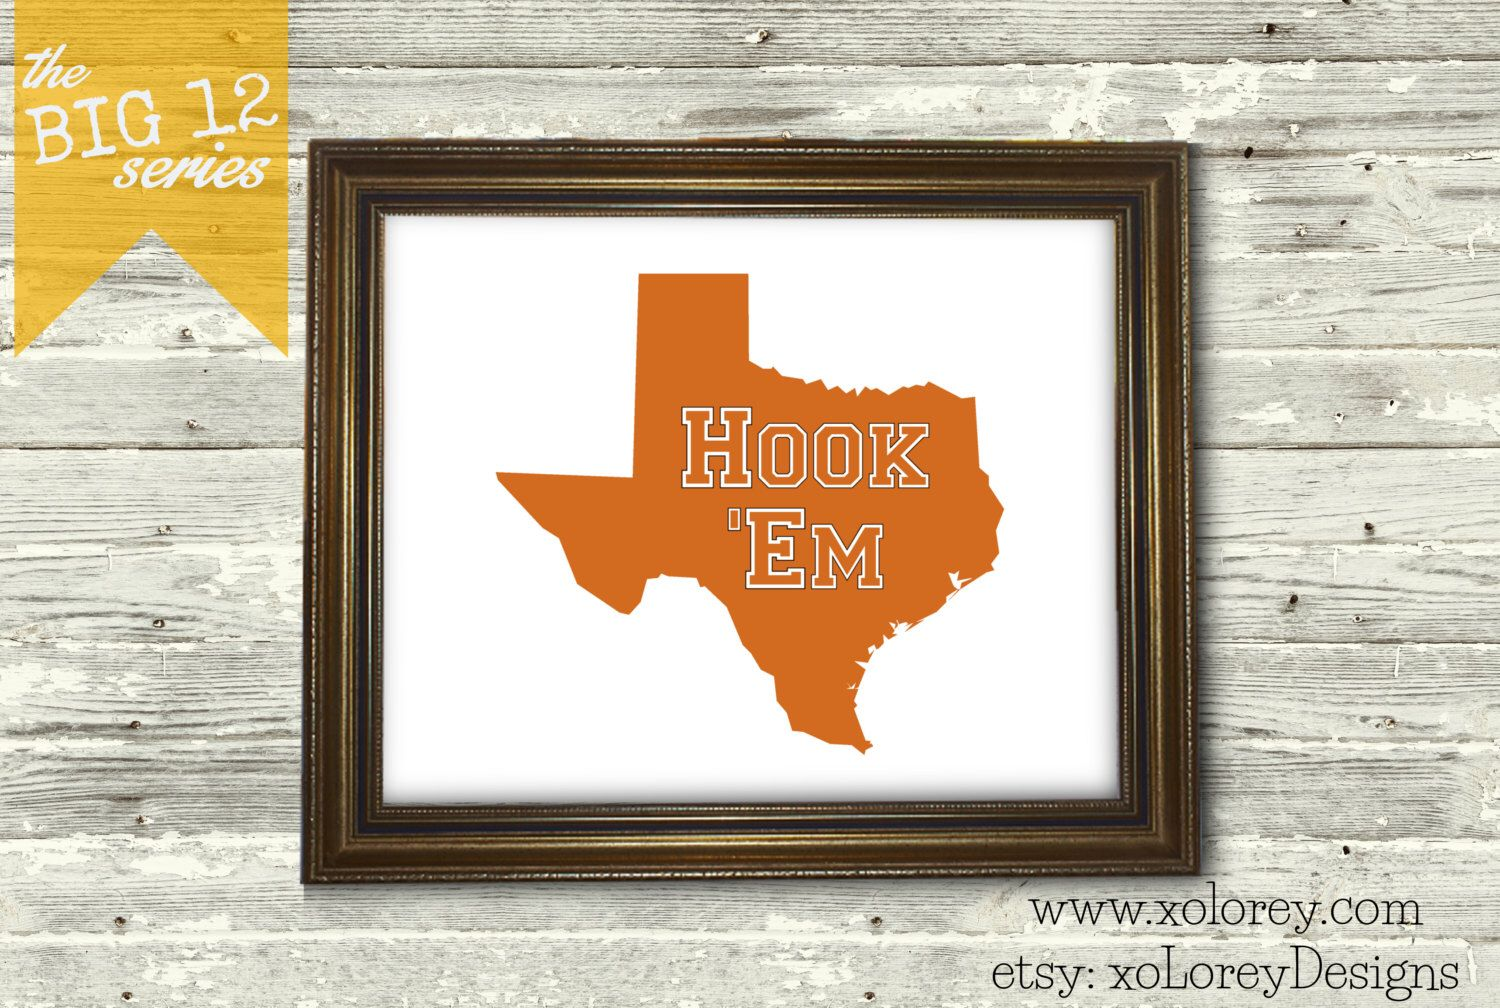 Game Day Decor! The Big 12 Series - UNIVERSITY of TEXAS LONGHORNS, Austin, Tx. - American Football Printable Wall Art by xoLoreyDesigns on Etsy https://www.etsy.com/listing/239489255/game-day-decor-the-big-12-series